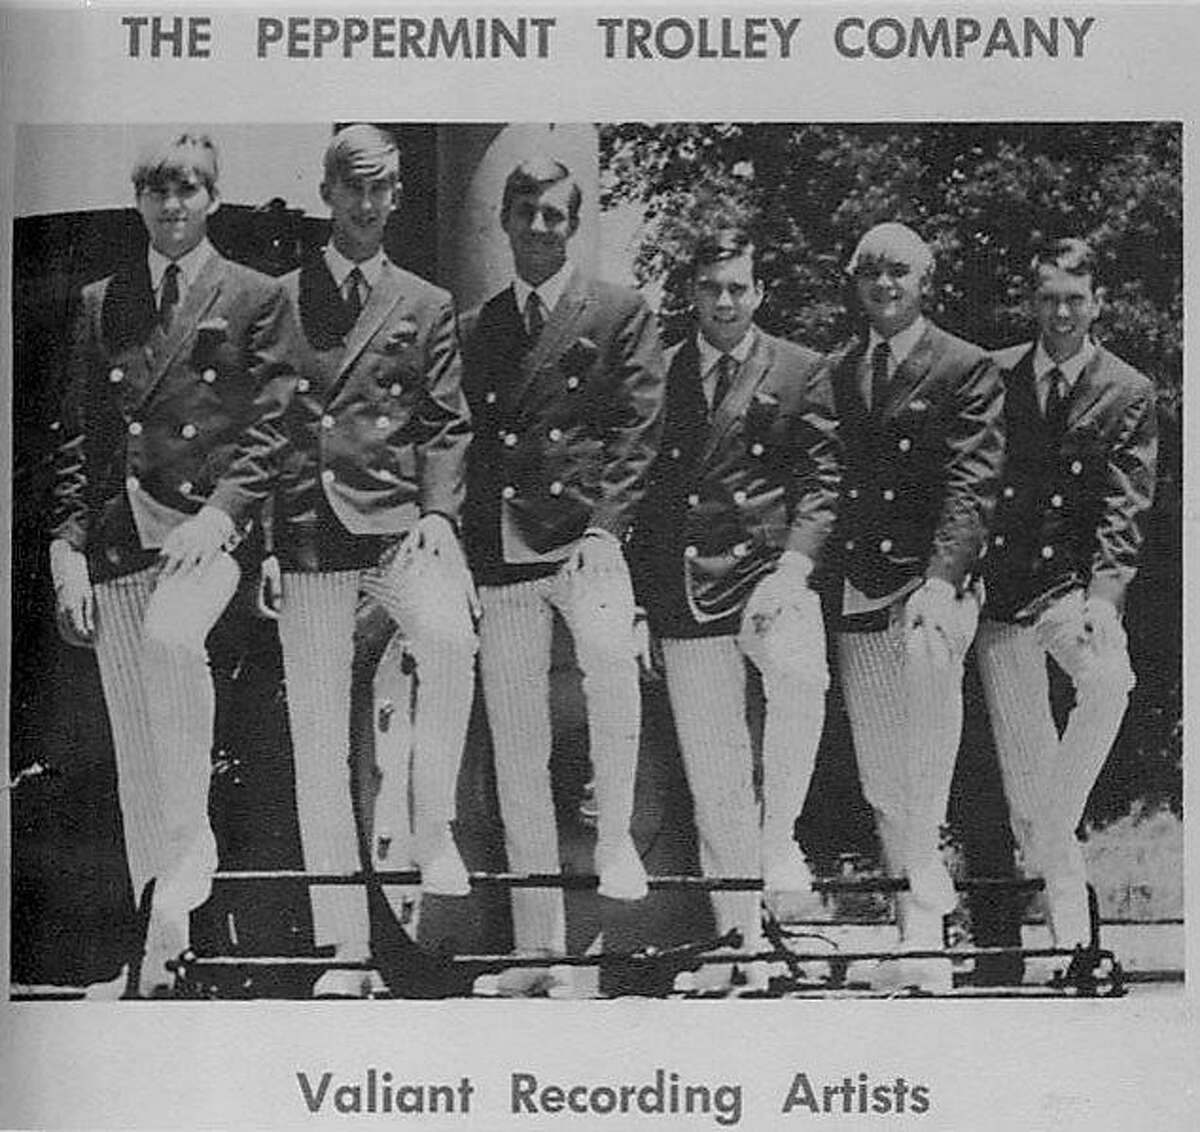 David Kelliher, aka Dave Roberts, (second from left) with his band Peppermint Trolley Company in the mid-1960s